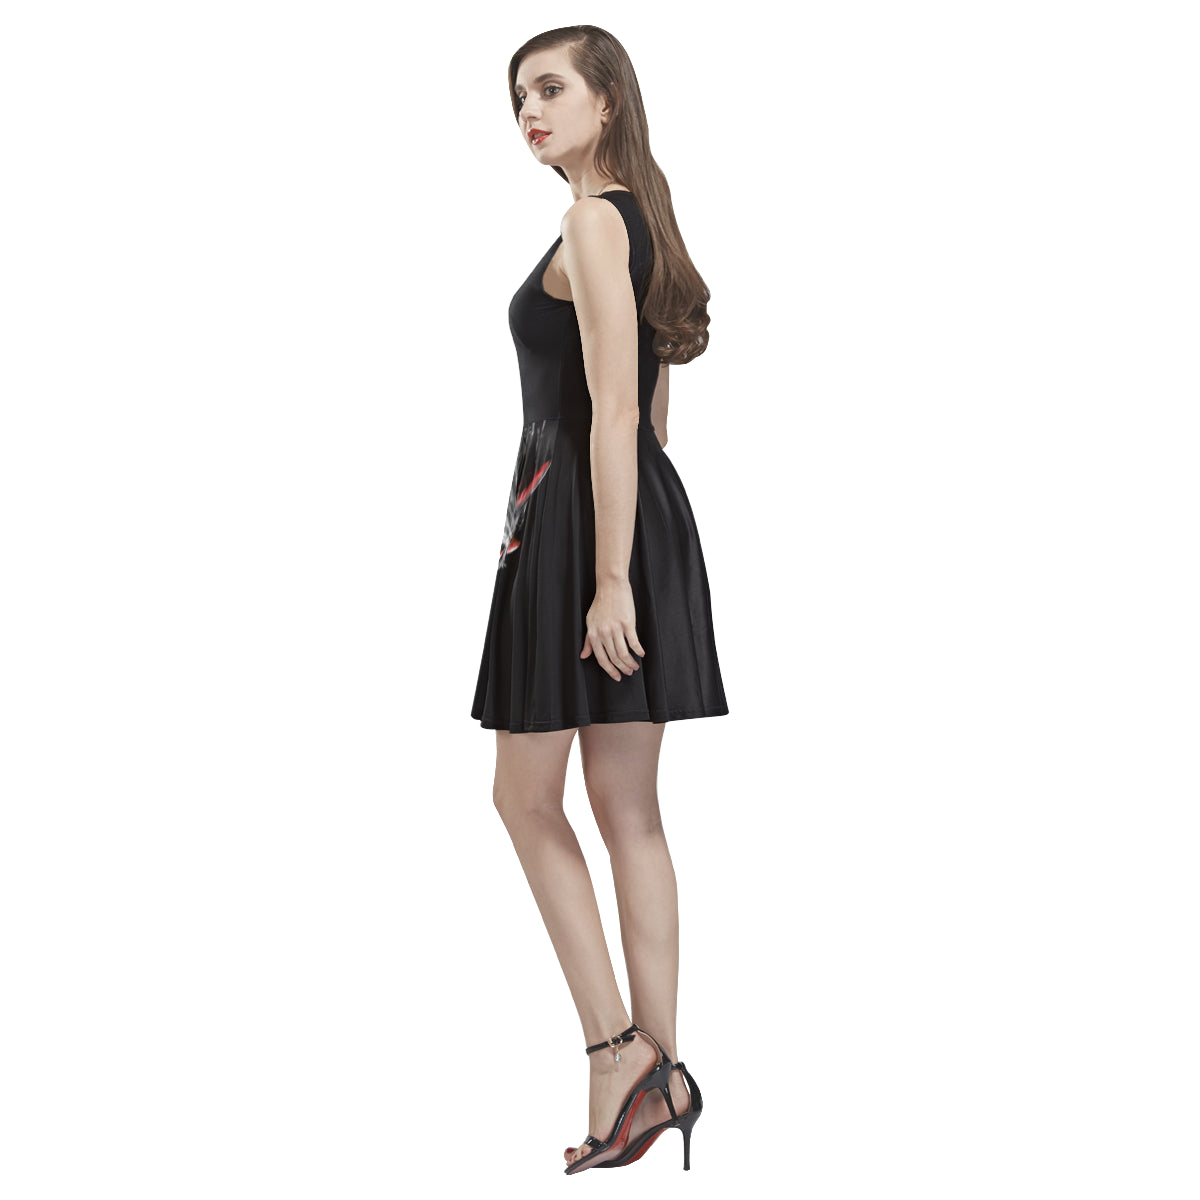 Epic Mononoke Dress Thea Sleeveless Skater Dress(Model D19)-Thea Sleeveless Skater Dress (D19)-e-joyer|Threadiverse